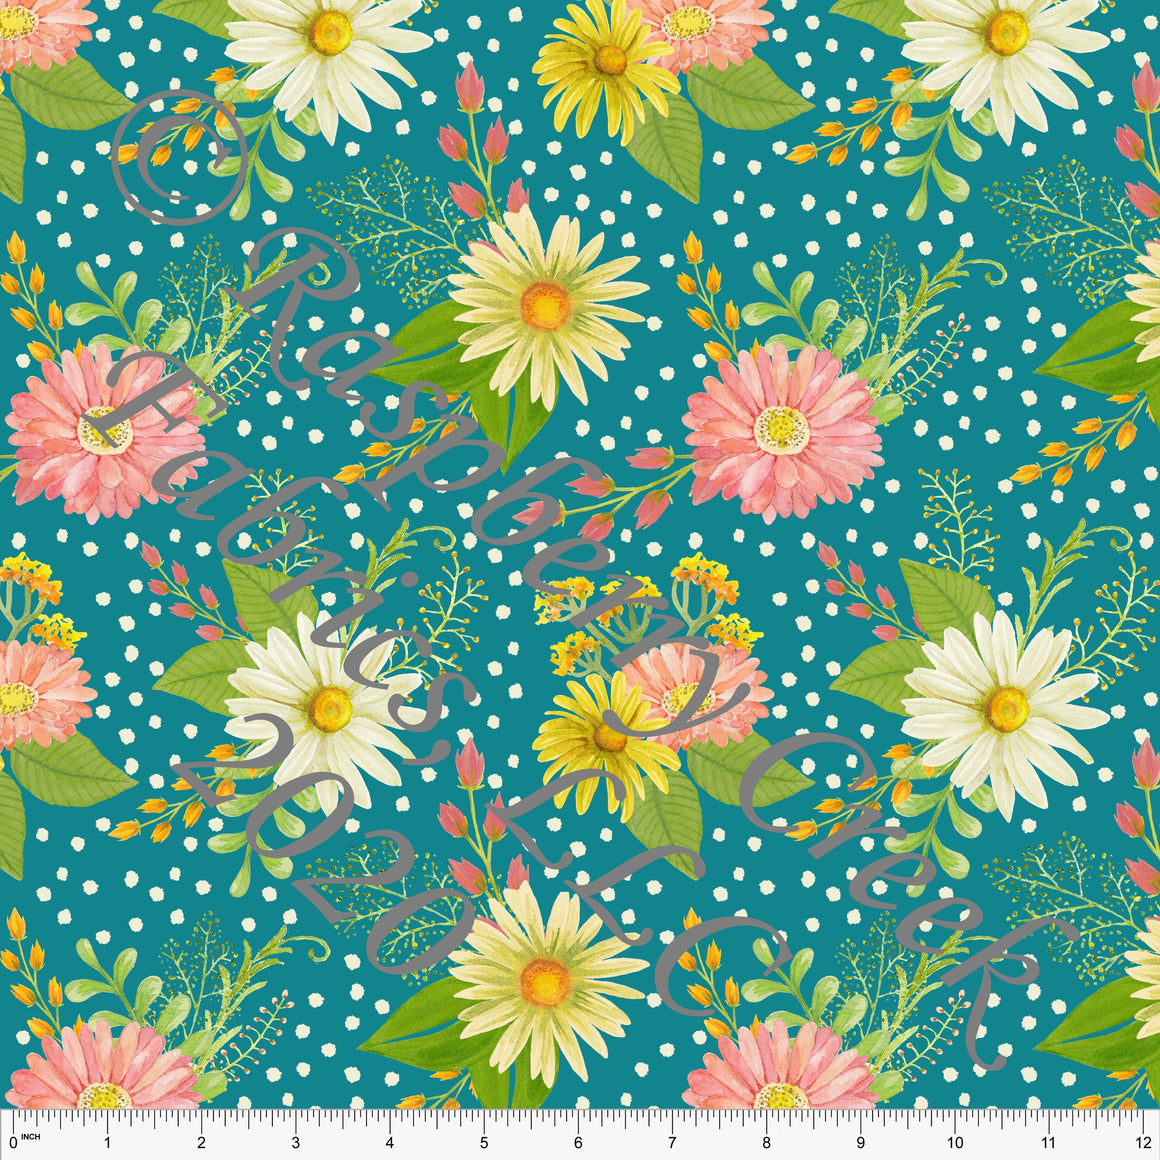 Bright Teal Fuchsia Pink Yellow and Green Daisy Dot Floral Print Double Brushed Poly Knit Fabric, CLUB Fabrics - Raspberry Creek Fabrics